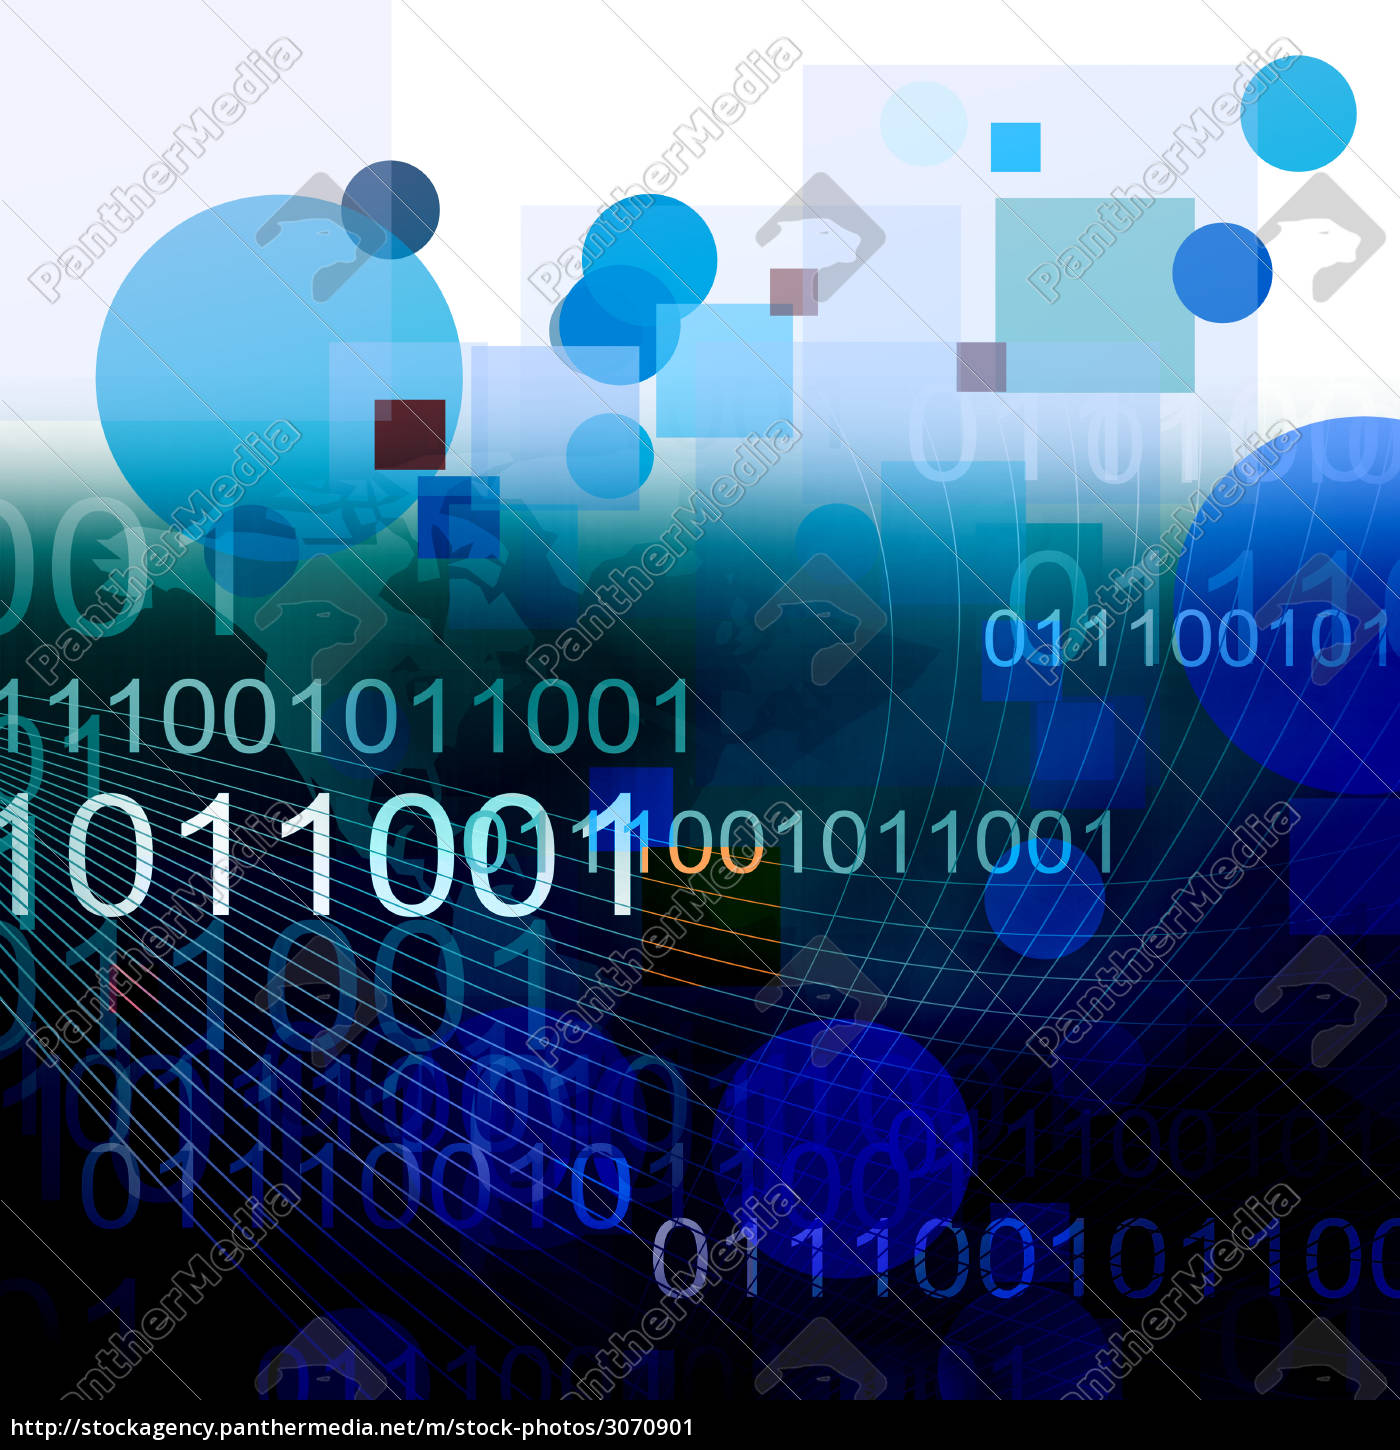 pay-background-abstract-binary - 3070901